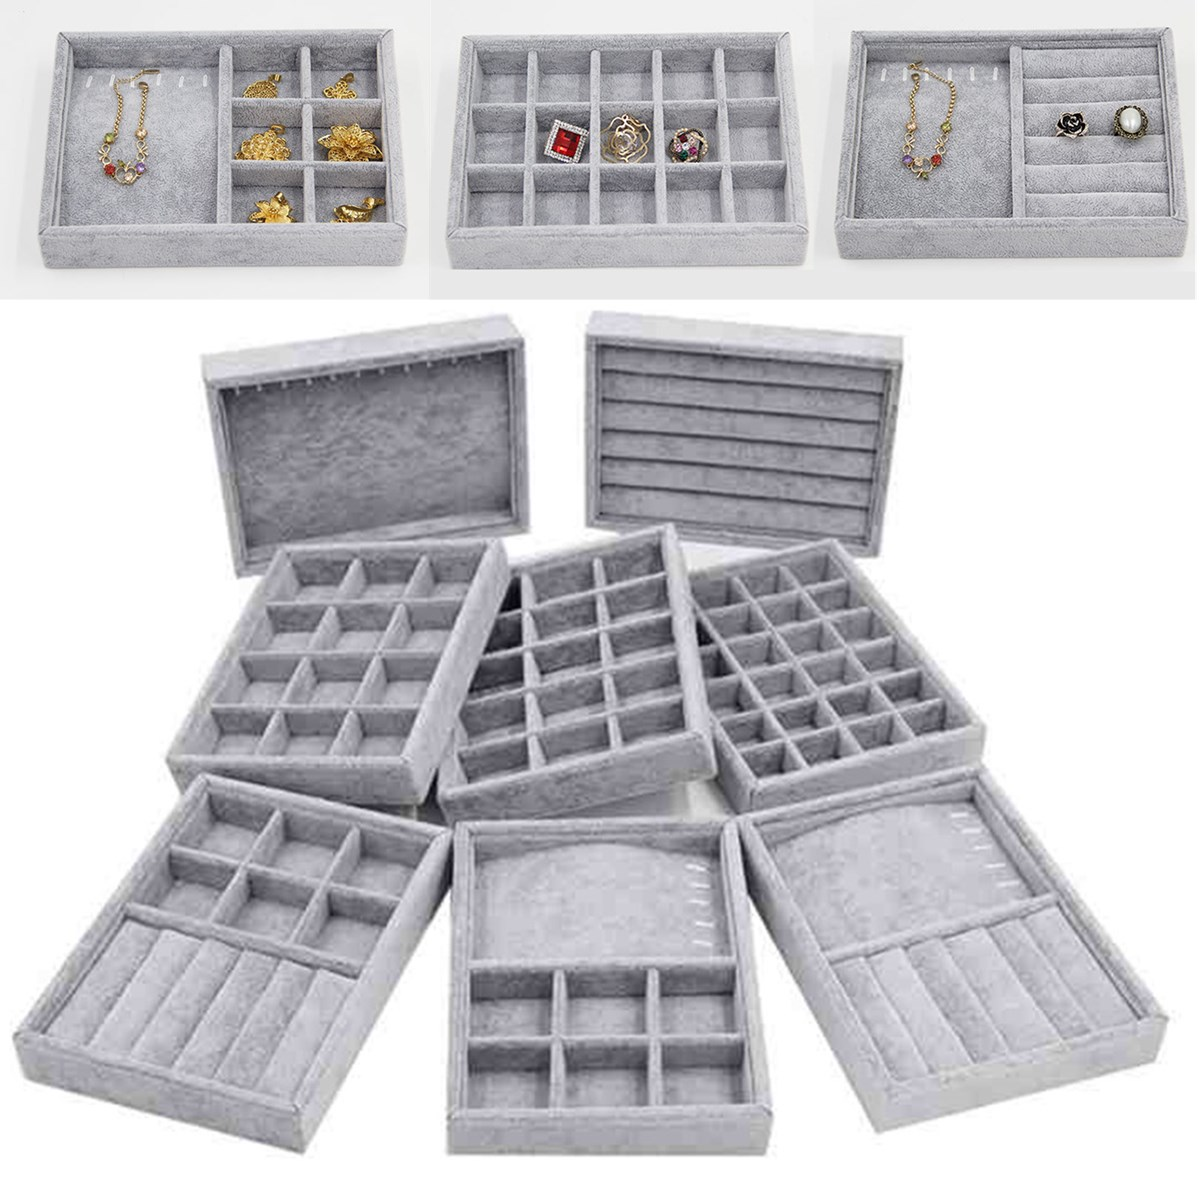 8 Style Elegant Grey Velvet Stackable Jewelry Ring Earring Bracelet Display Tray 24 Girds Case Holder Organizers Storage Showcas